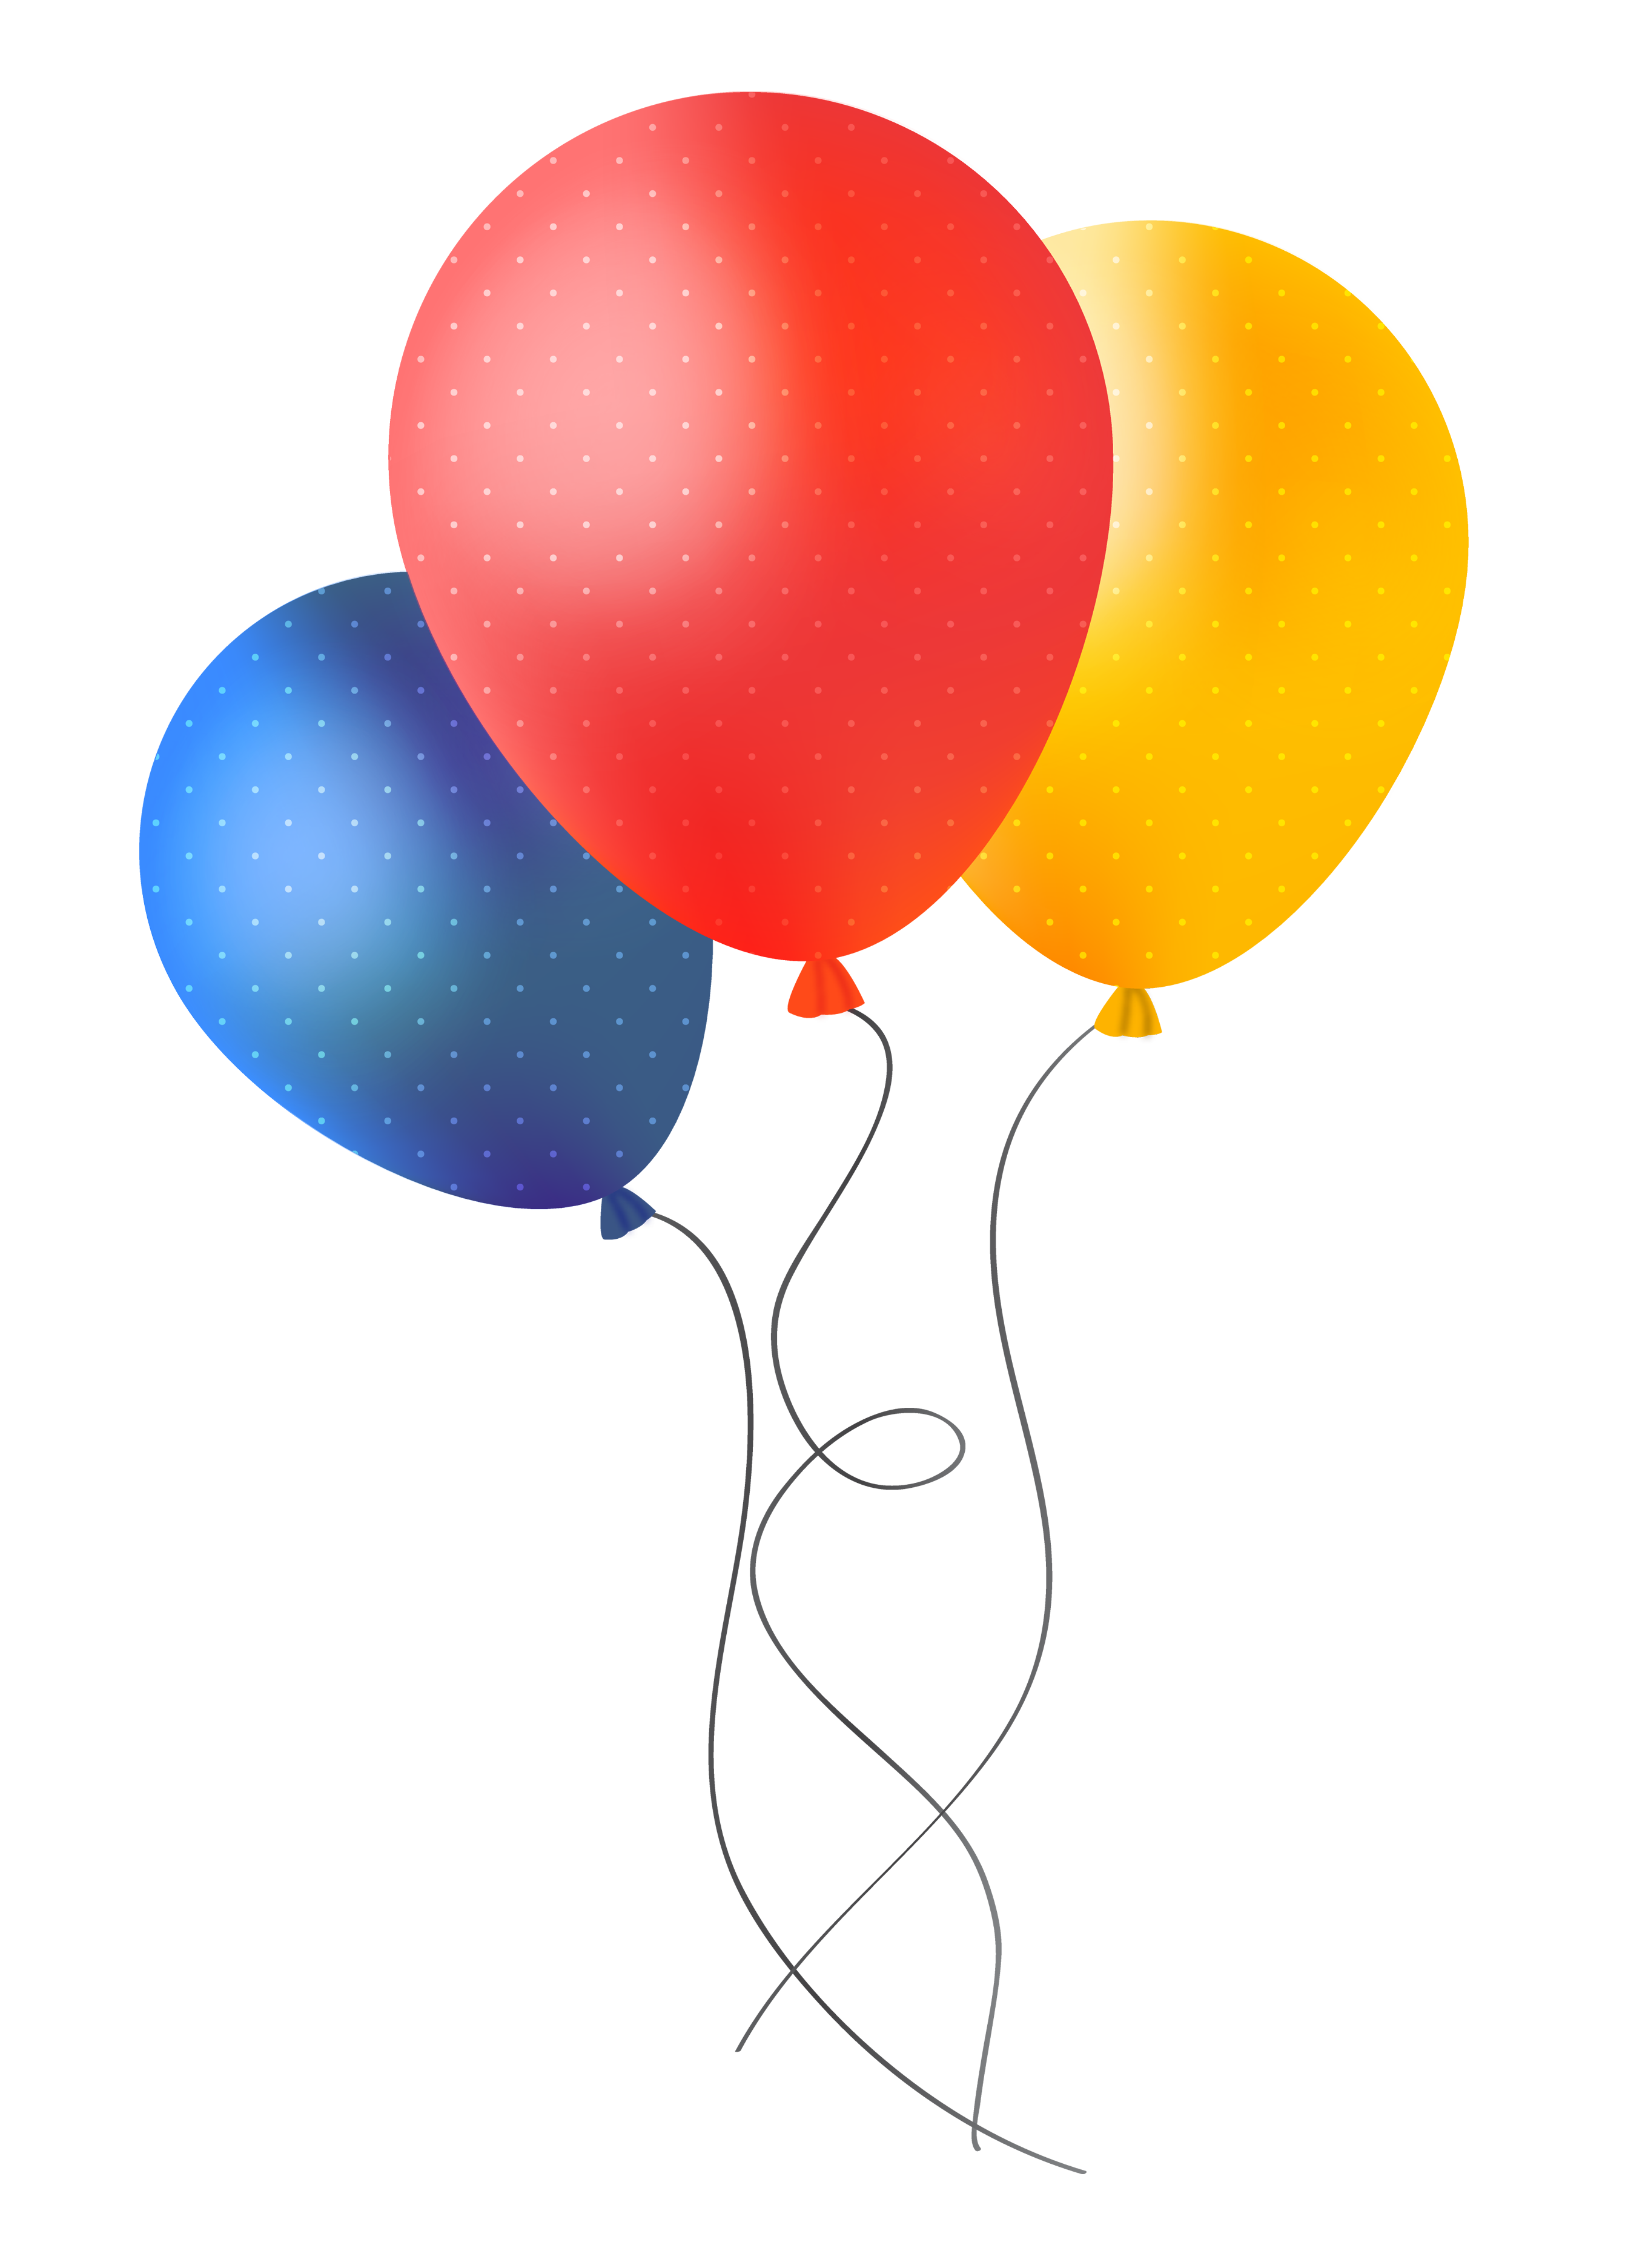 clipart balloons png - photo #11